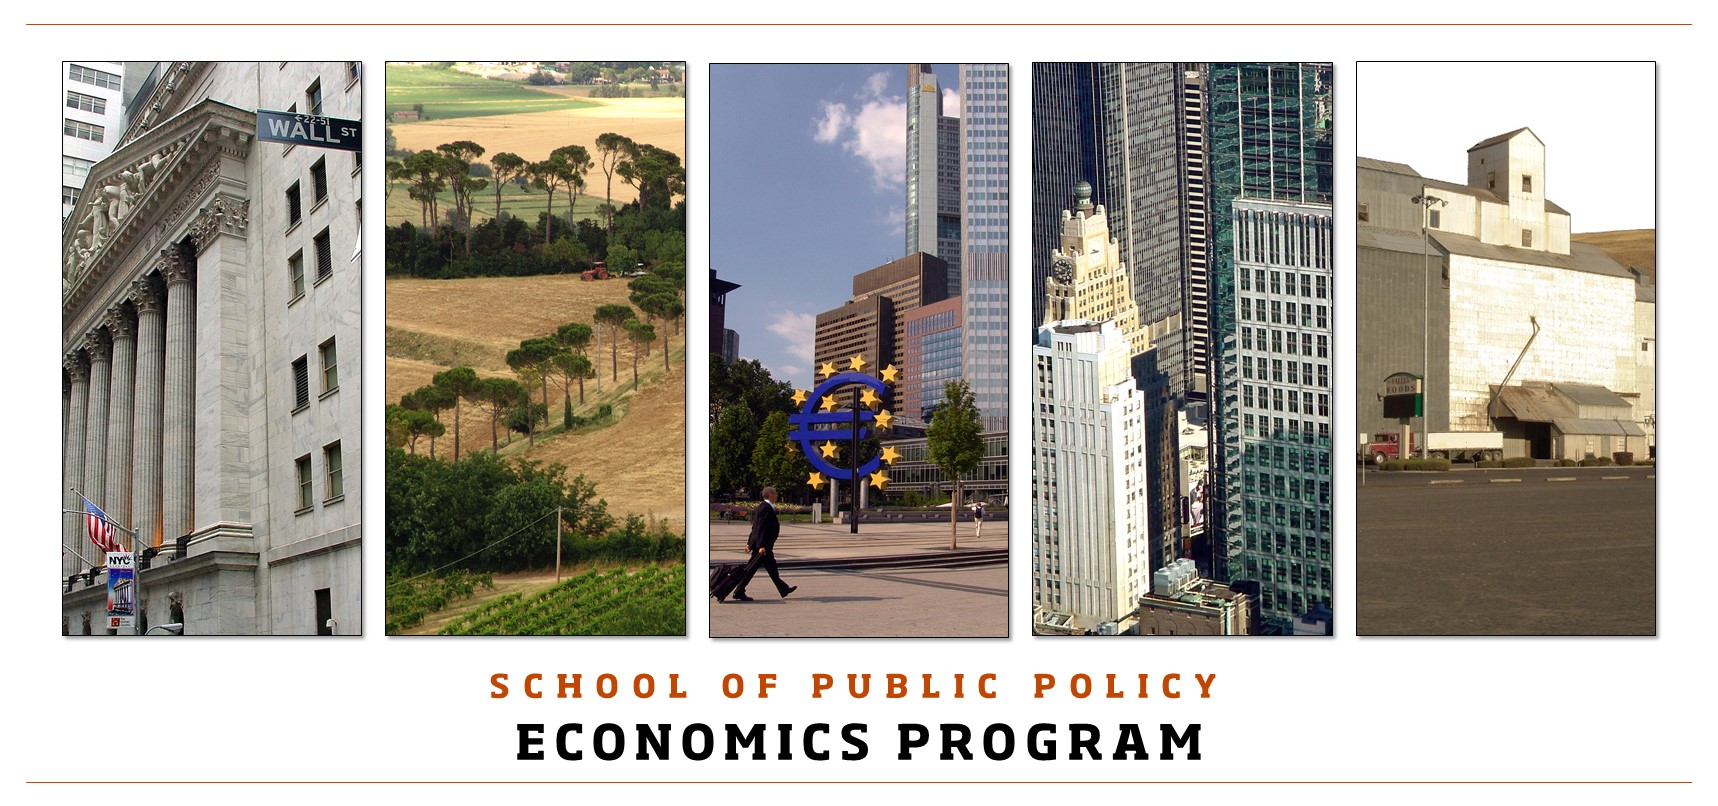 School of Public Policy Economics Program